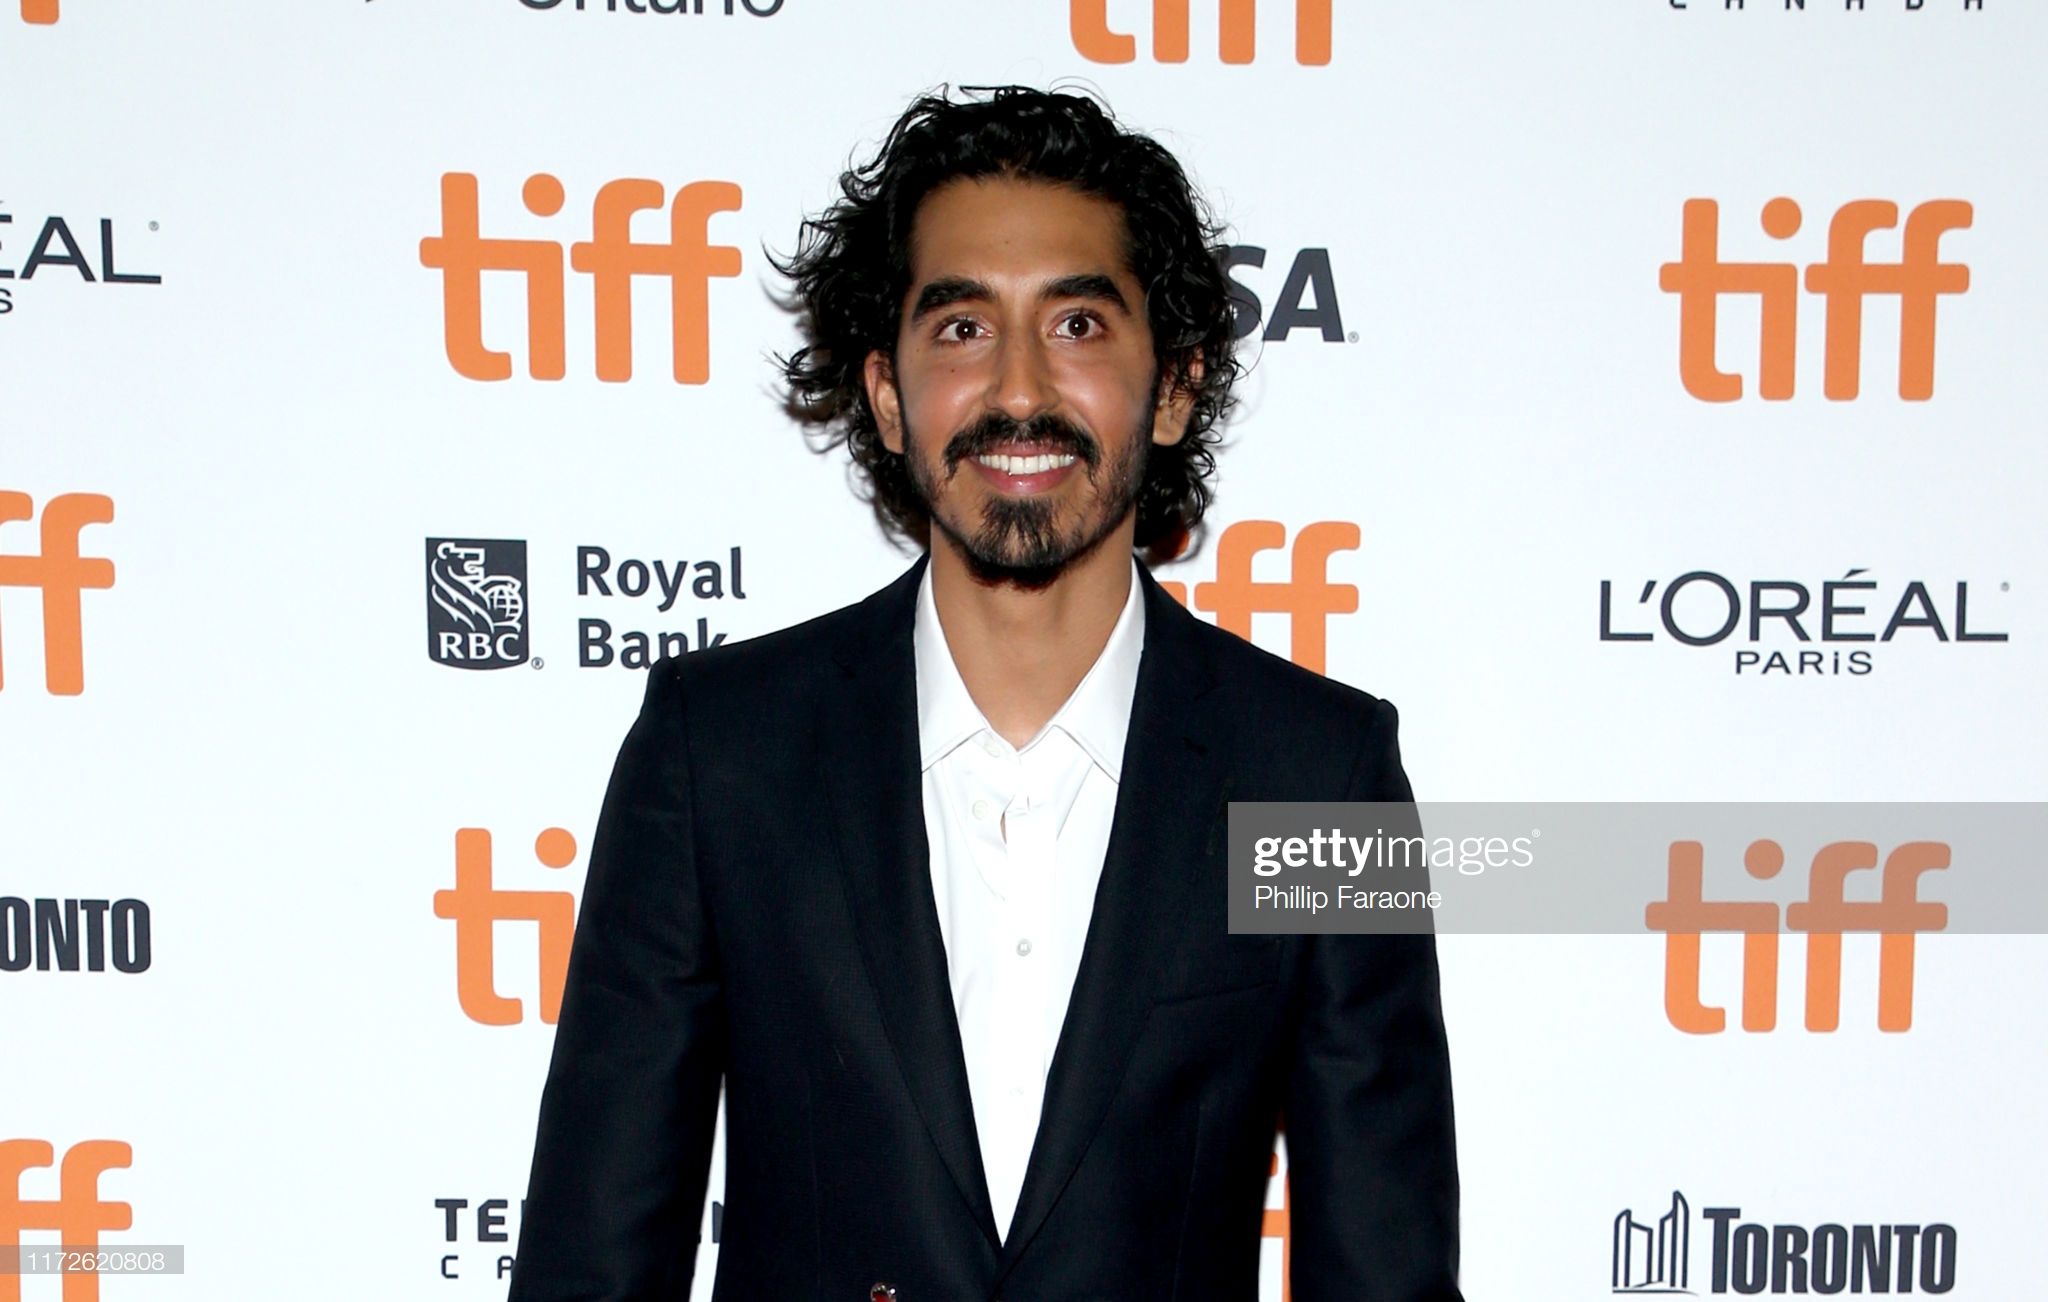 """TORONTO, ONTARIO - SEPTEMBER 05: Dev Patel attends """"The Personal History Of David Copperfield"""" premiere during the 2019 Toronto International Film Festival at Princess of Wales Theatre on September 05, 2019 in Toronto, Canada. (Photo by Phillip Faraone/Getty Images)"""